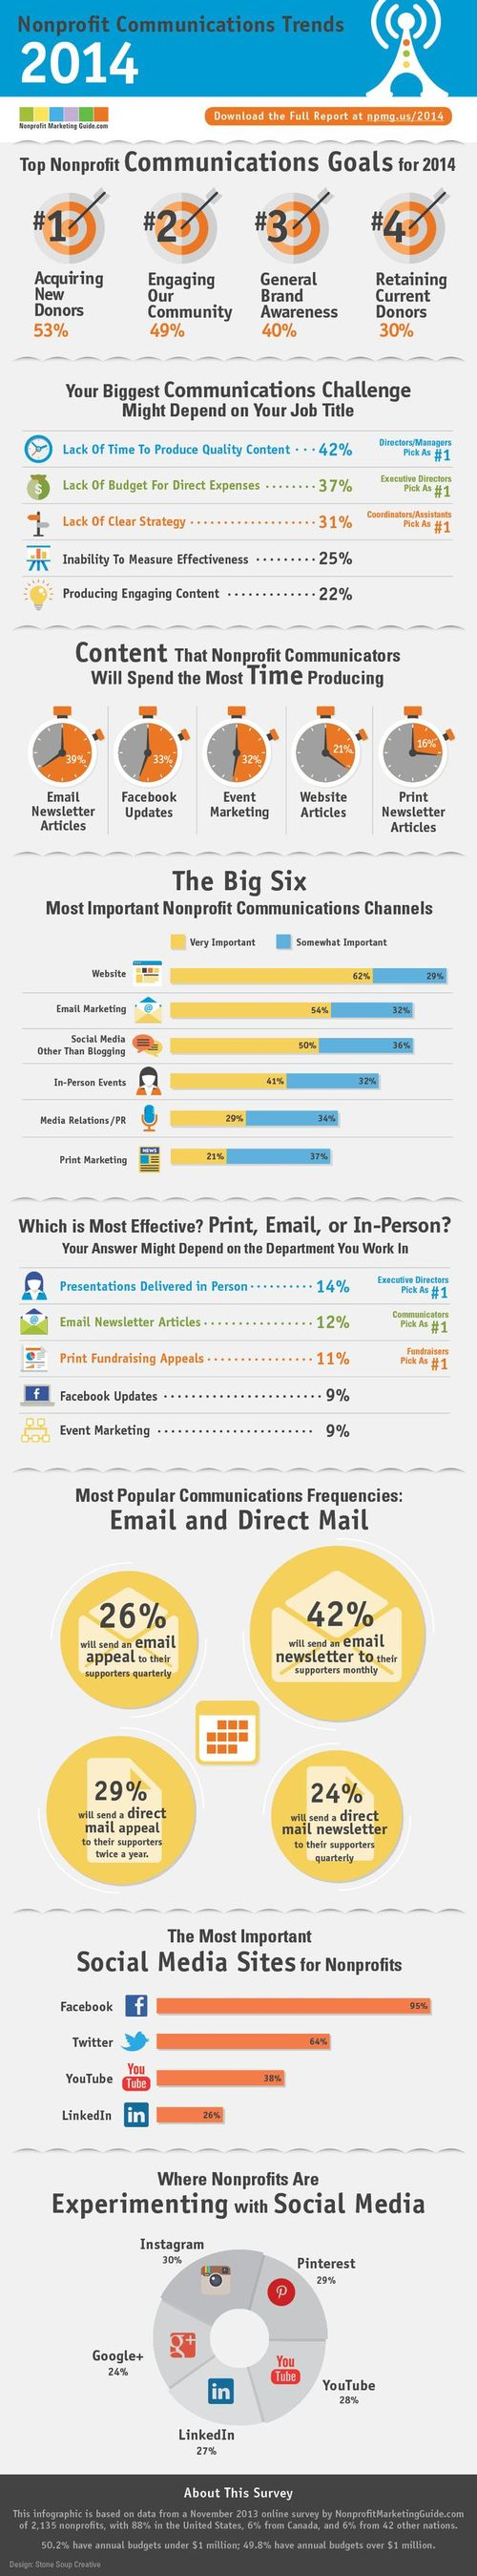 Infographic_2013NPO_comm_trends